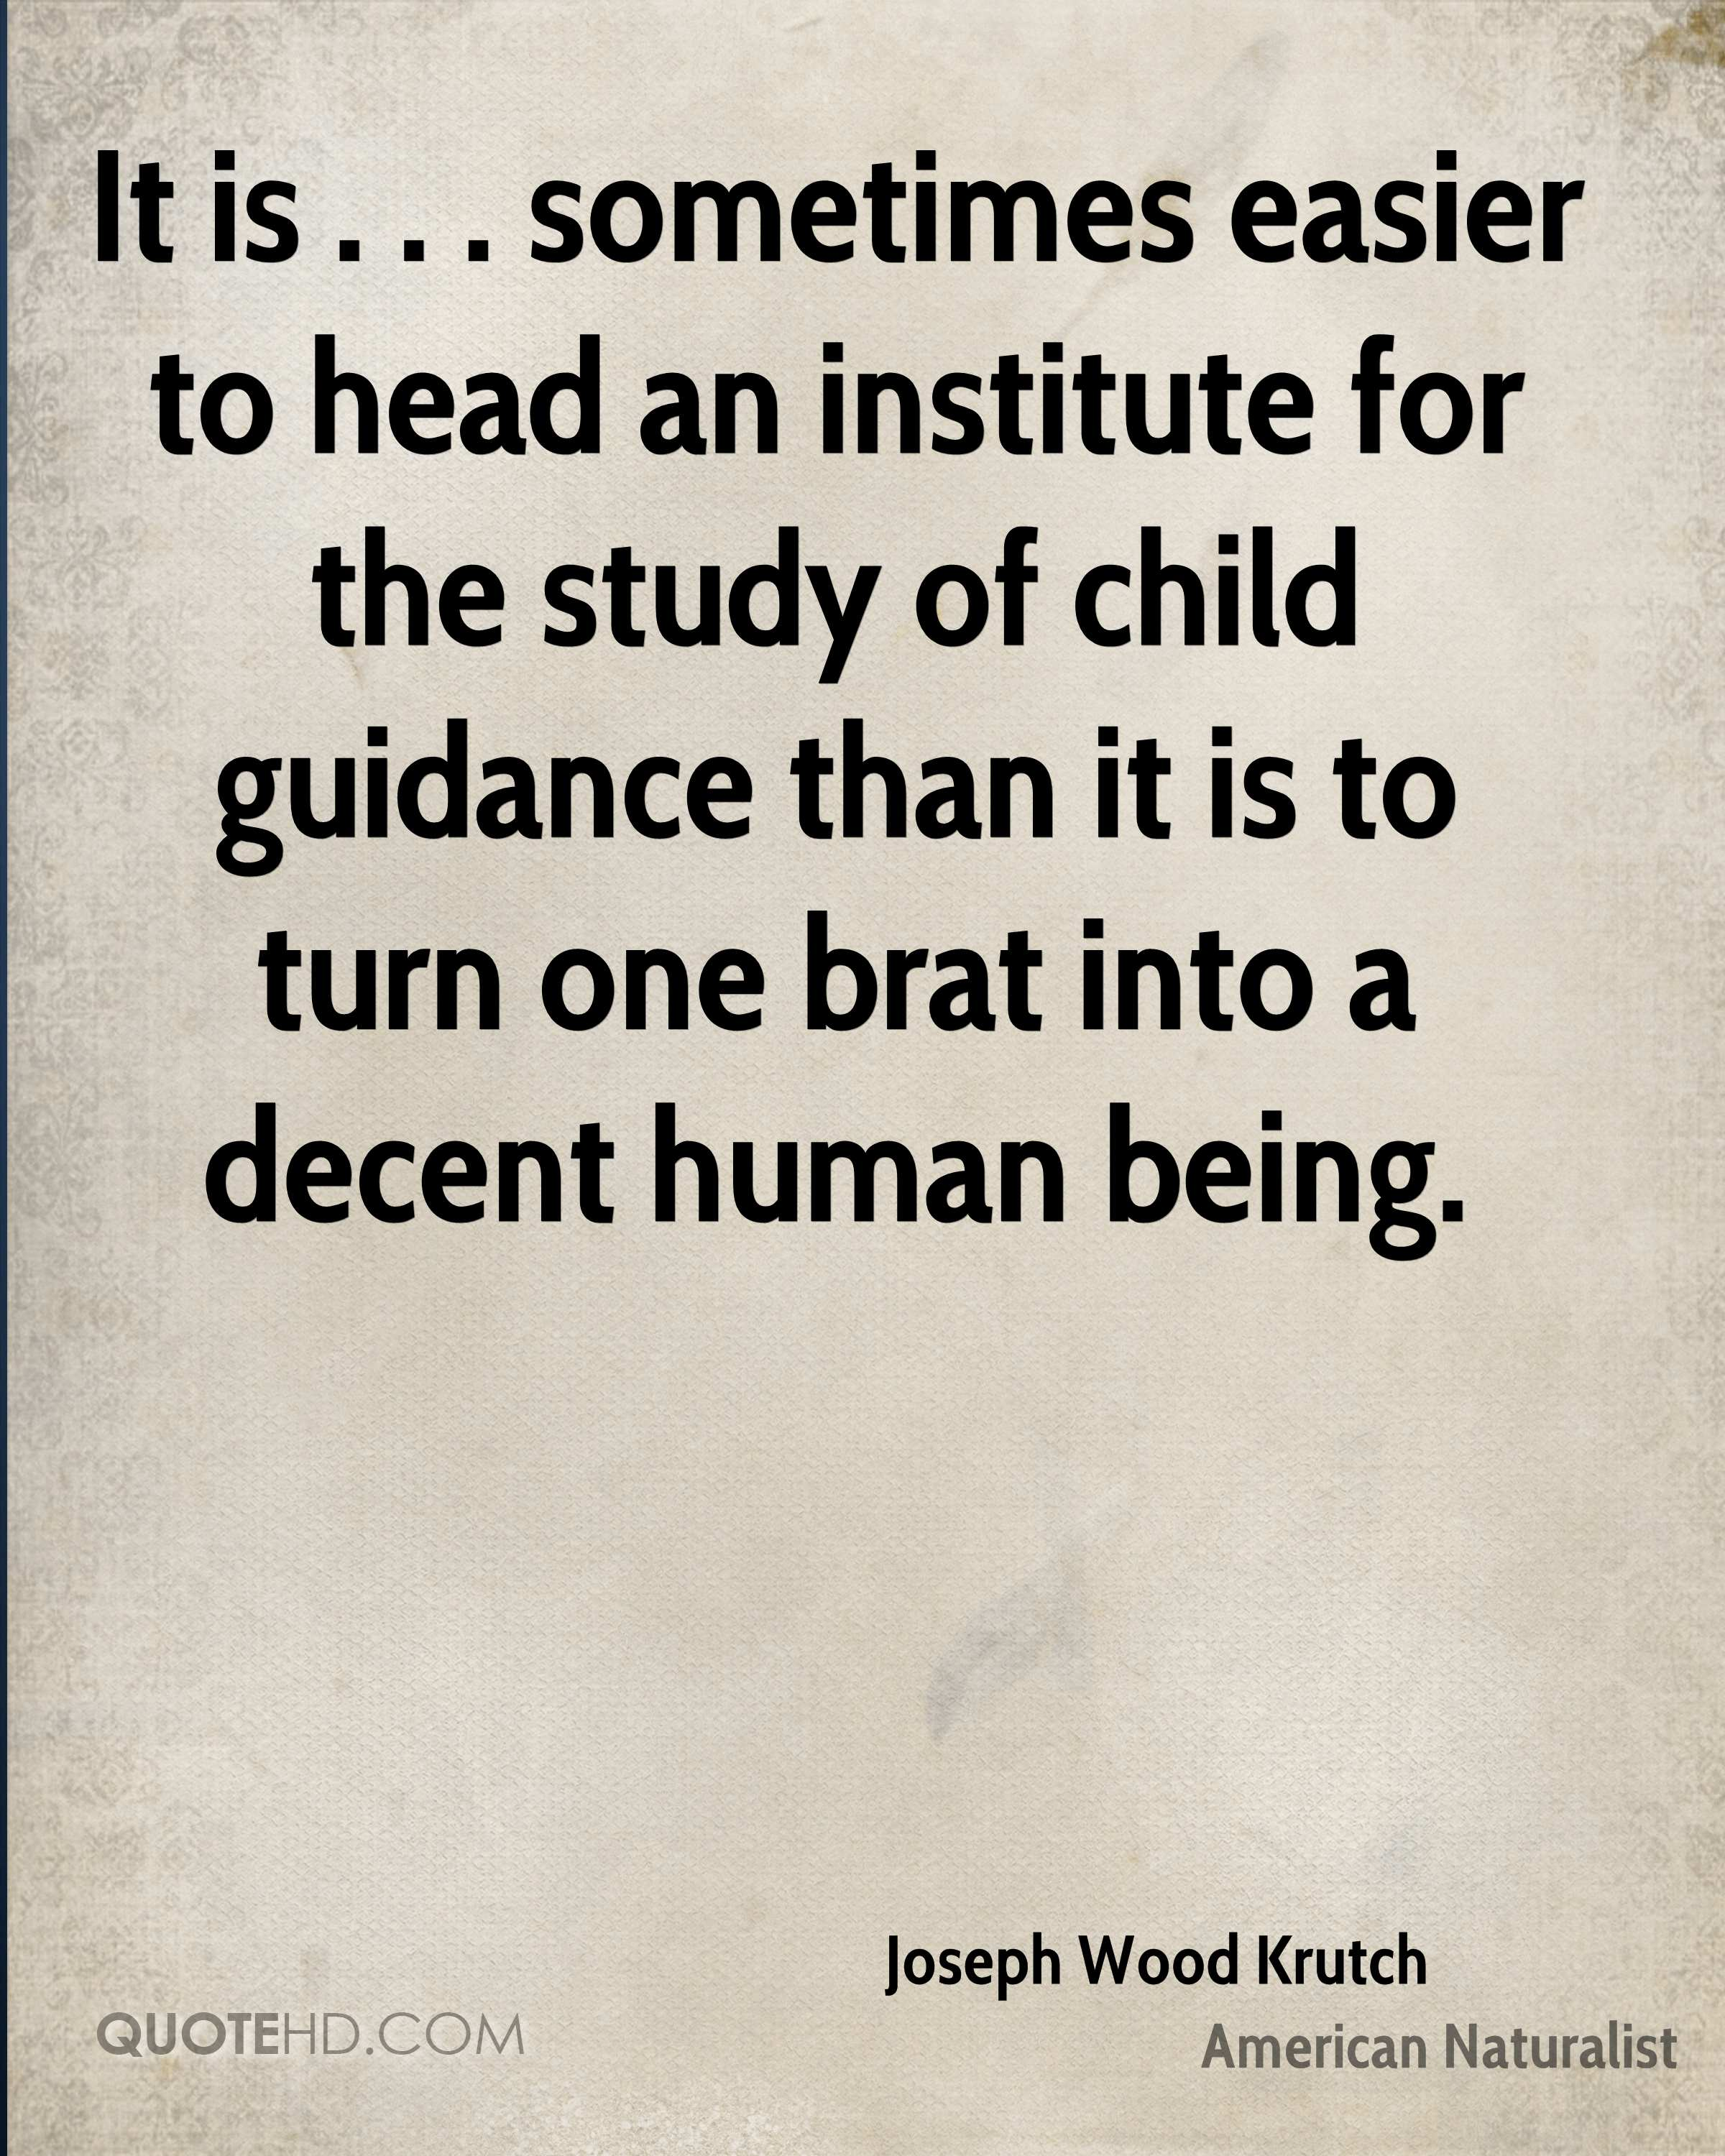 It is . . . sometimes easier to head an institute for the study of child guidance than it is to turn one brat into a decent human being.